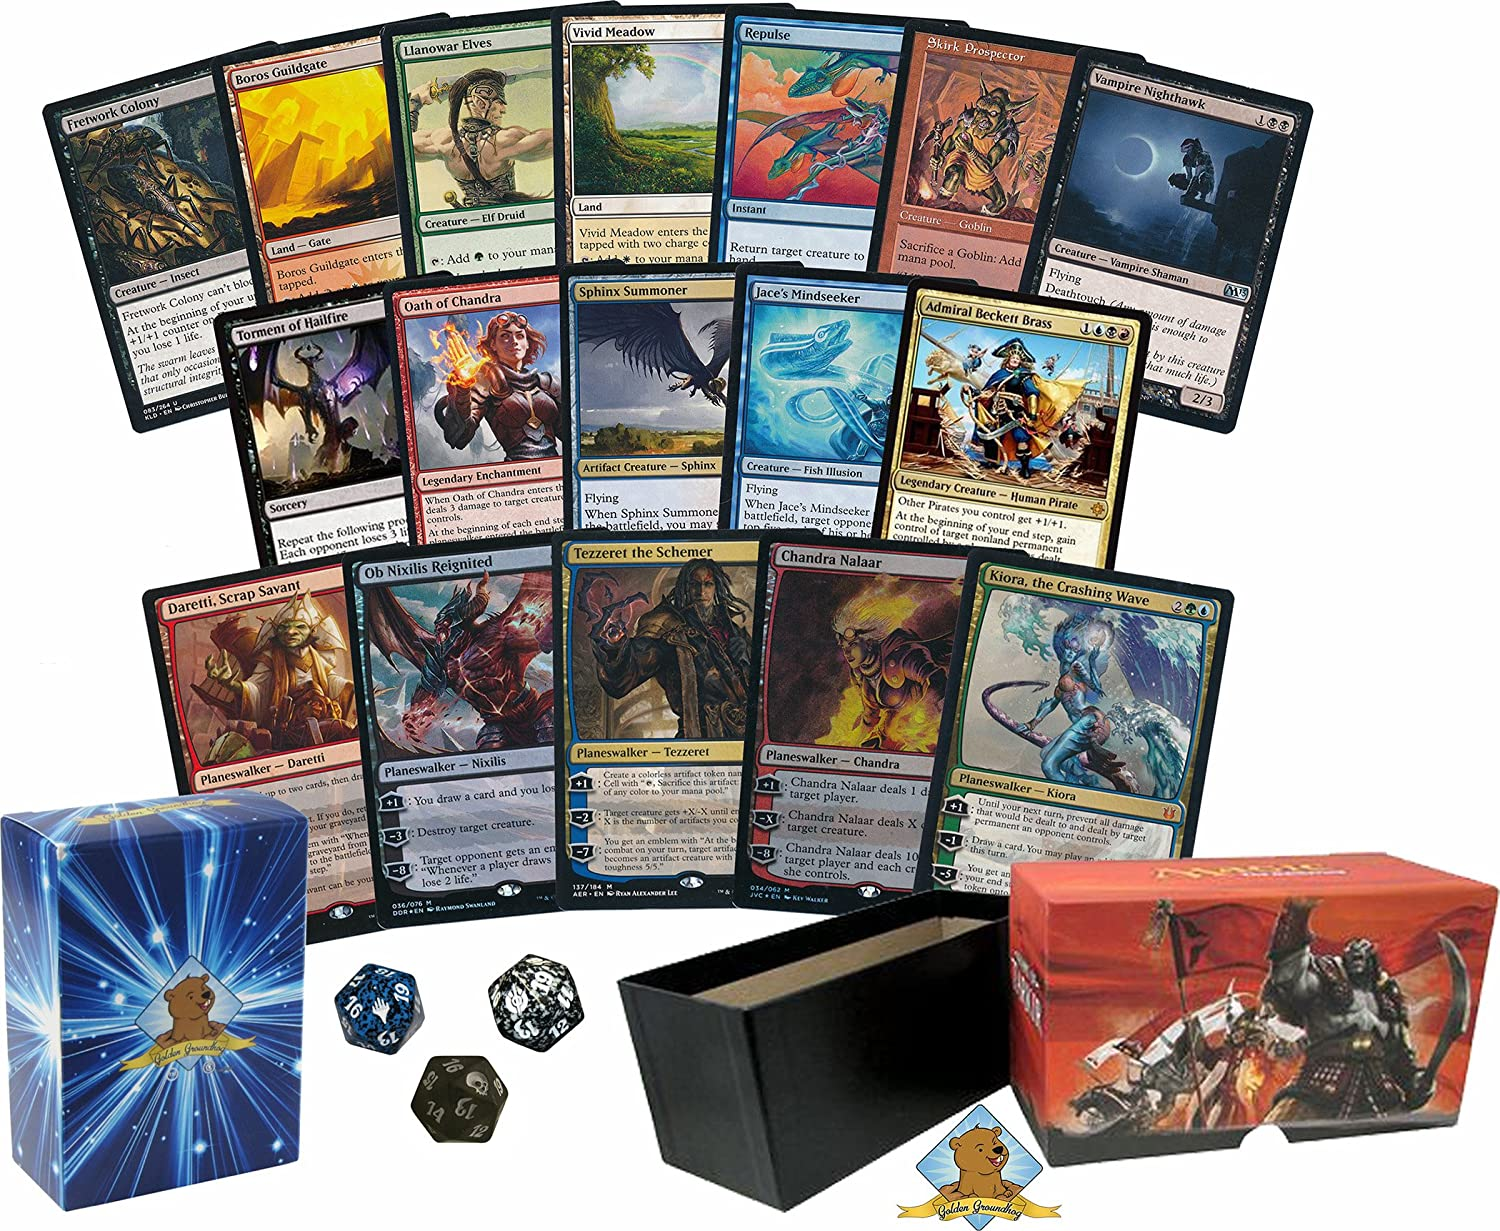 100 Magic The Gathering Cards Comes with an 80 Pack of Lands NO DUPLICATES with a PLANESWALKER Empty Fat Pack Box and Golden Groundhog Deck Box Included! Rares /& Spindown in Every Bundle